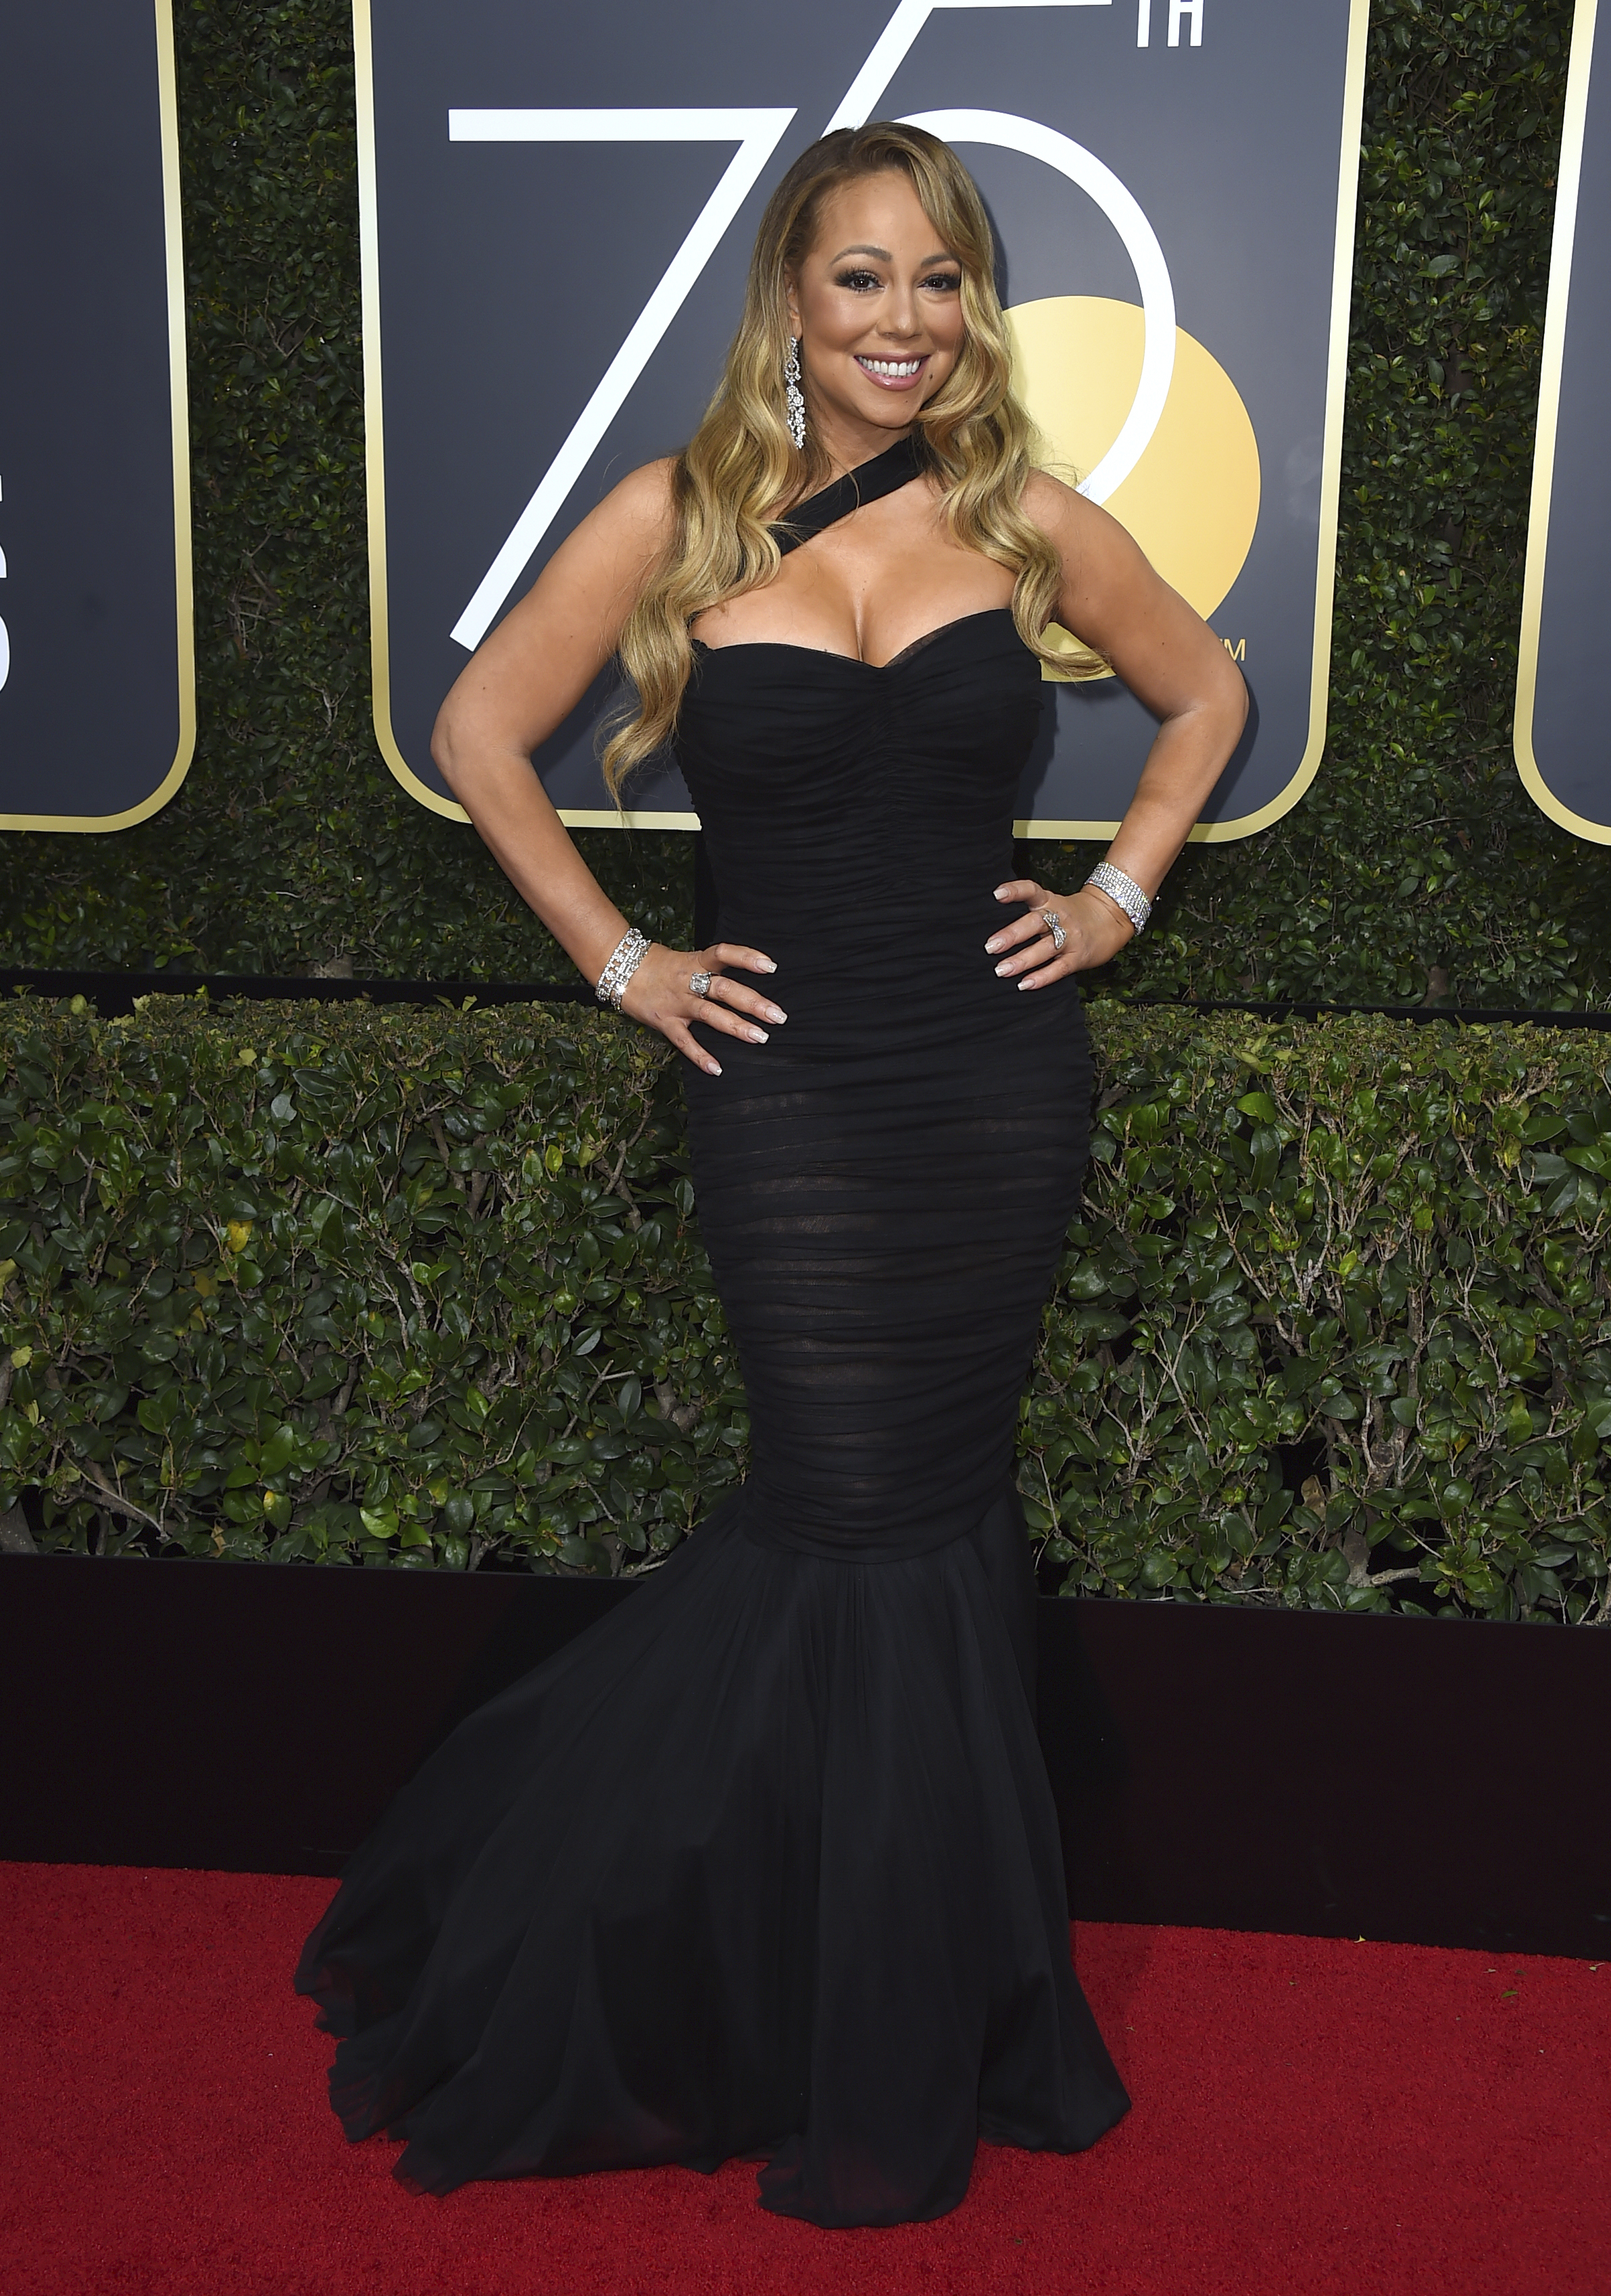 <div class='meta'><div class='origin-logo' data-origin='AP'></div><span class='caption-text' data-credit='Jordan Strauss/Invision/AP'>Mariah Carey arrives at the 75th annual Golden Globe Awards at the Beverly Hilton Hotel on Sunday, Jan. 7, 2018, in Beverly Hills, Calif.</span></div>